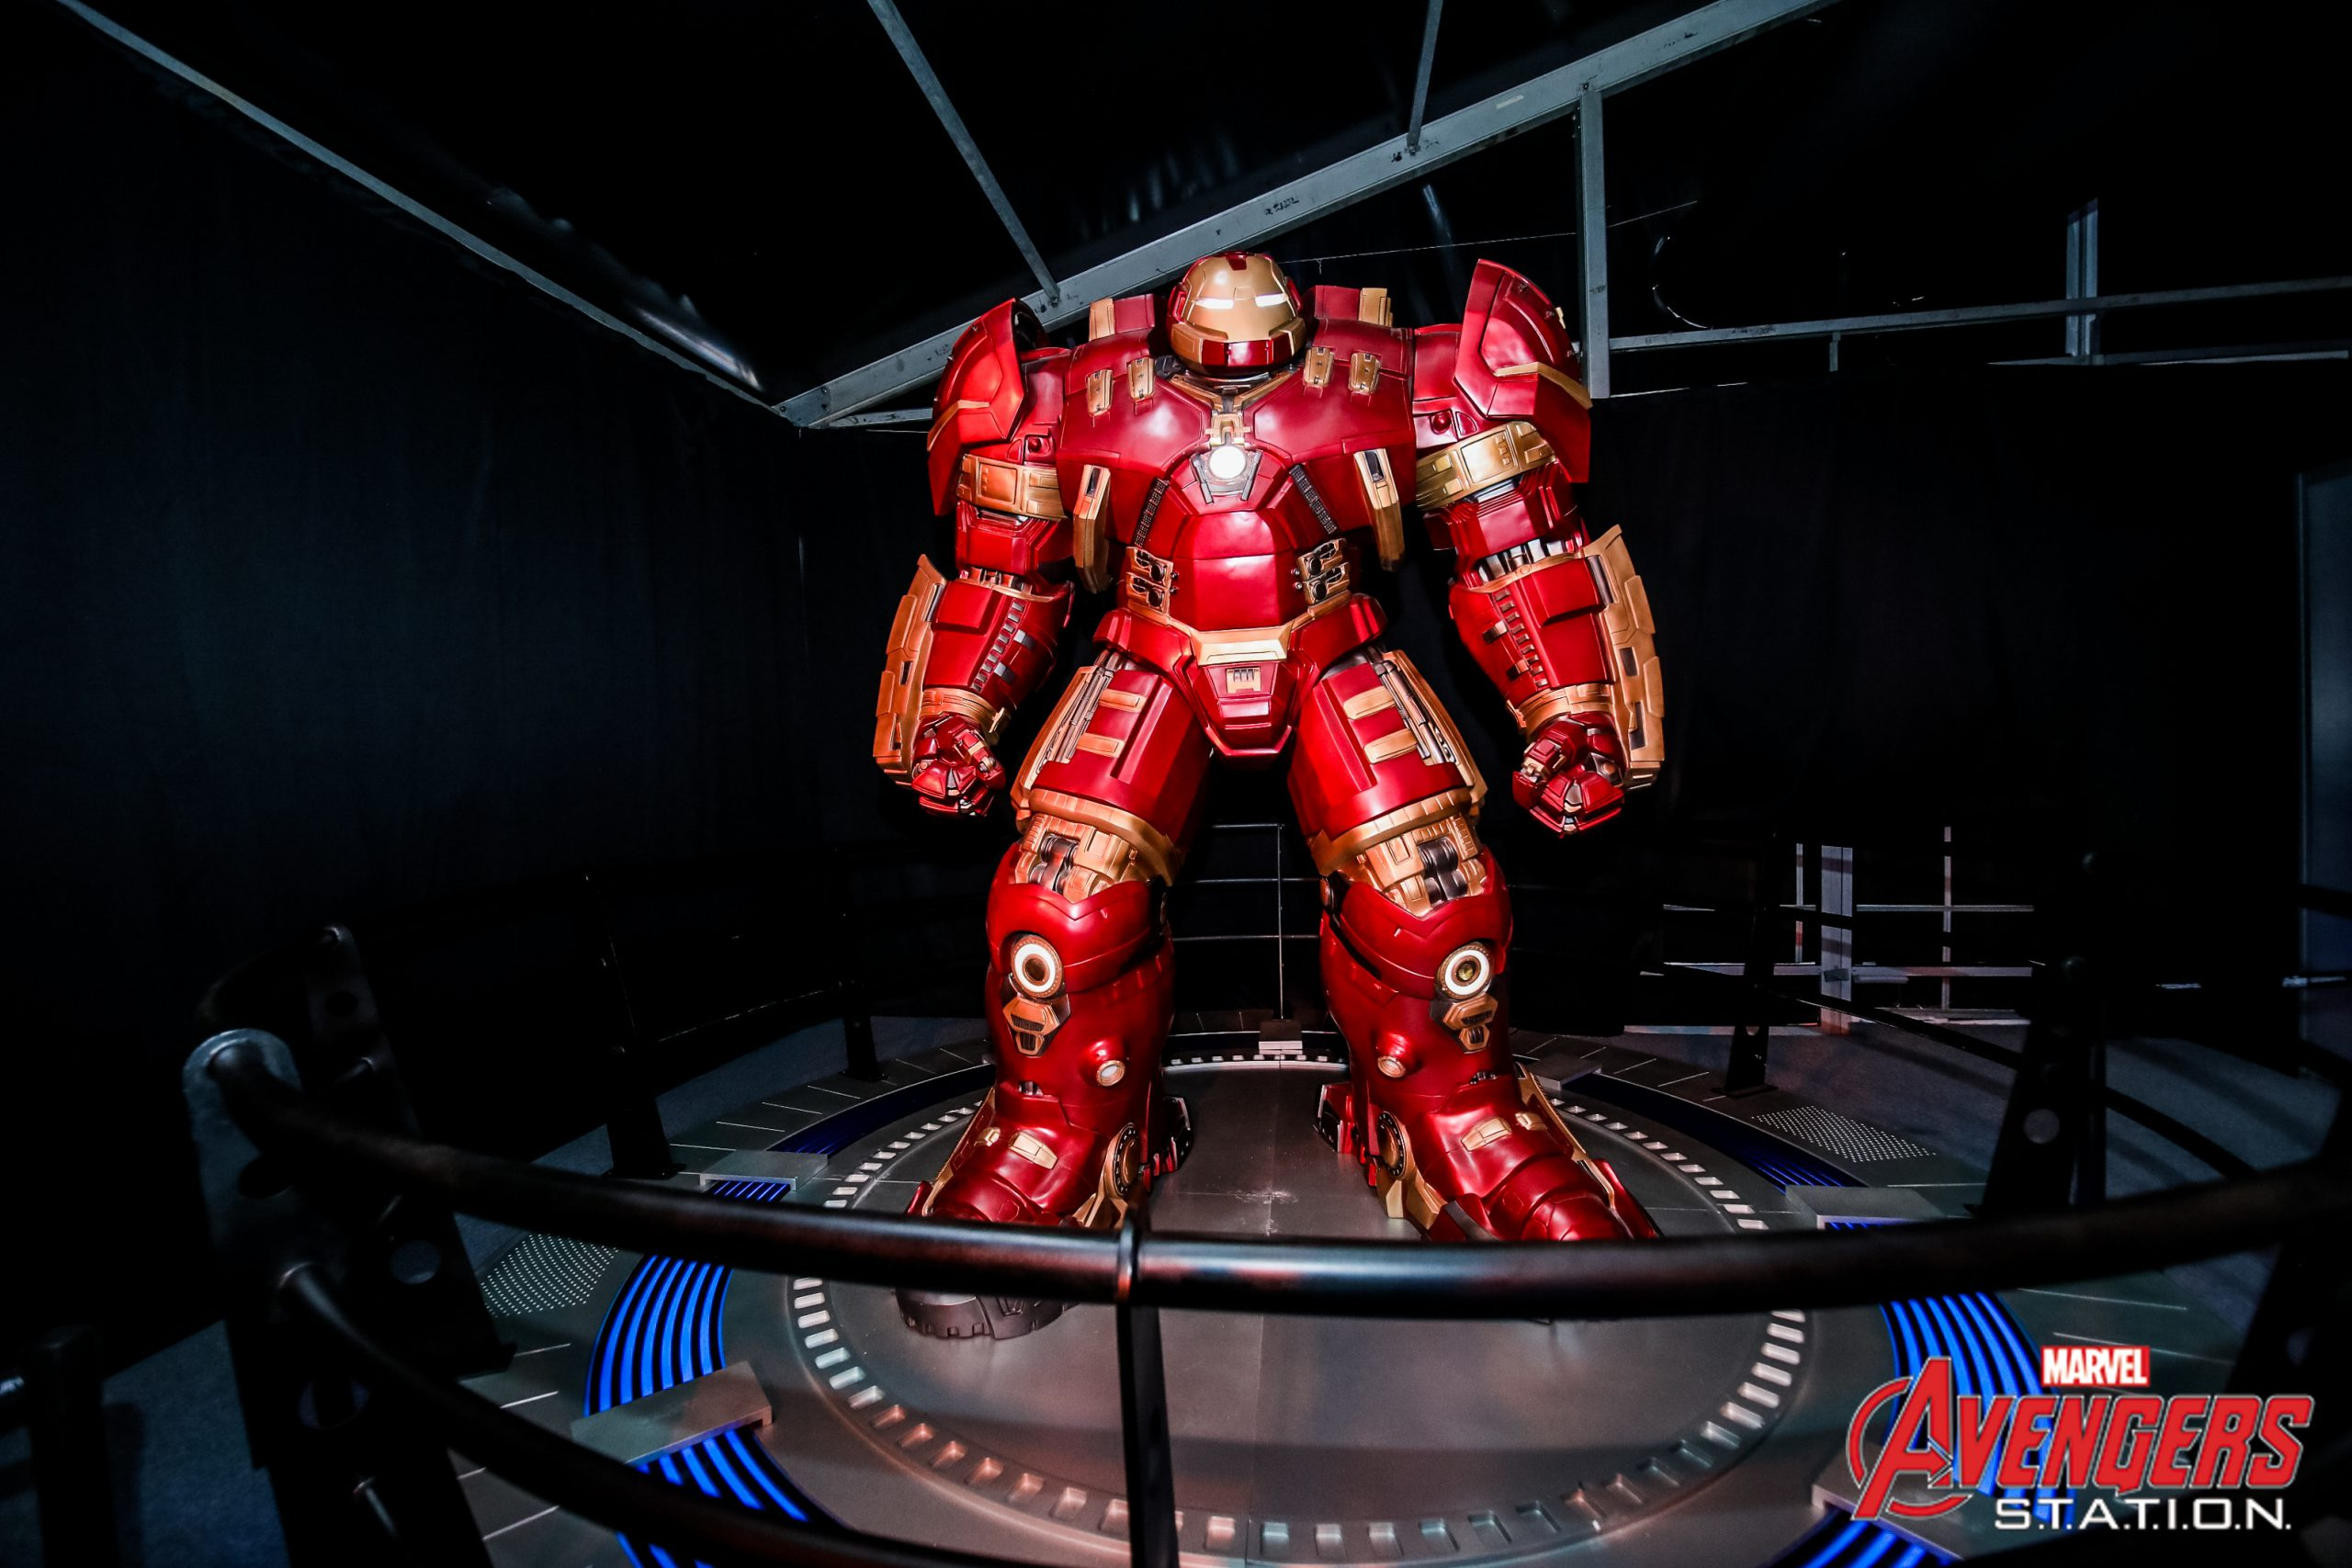 Iron Man at Marvel's Avengers S.T.A.T.I.O.N